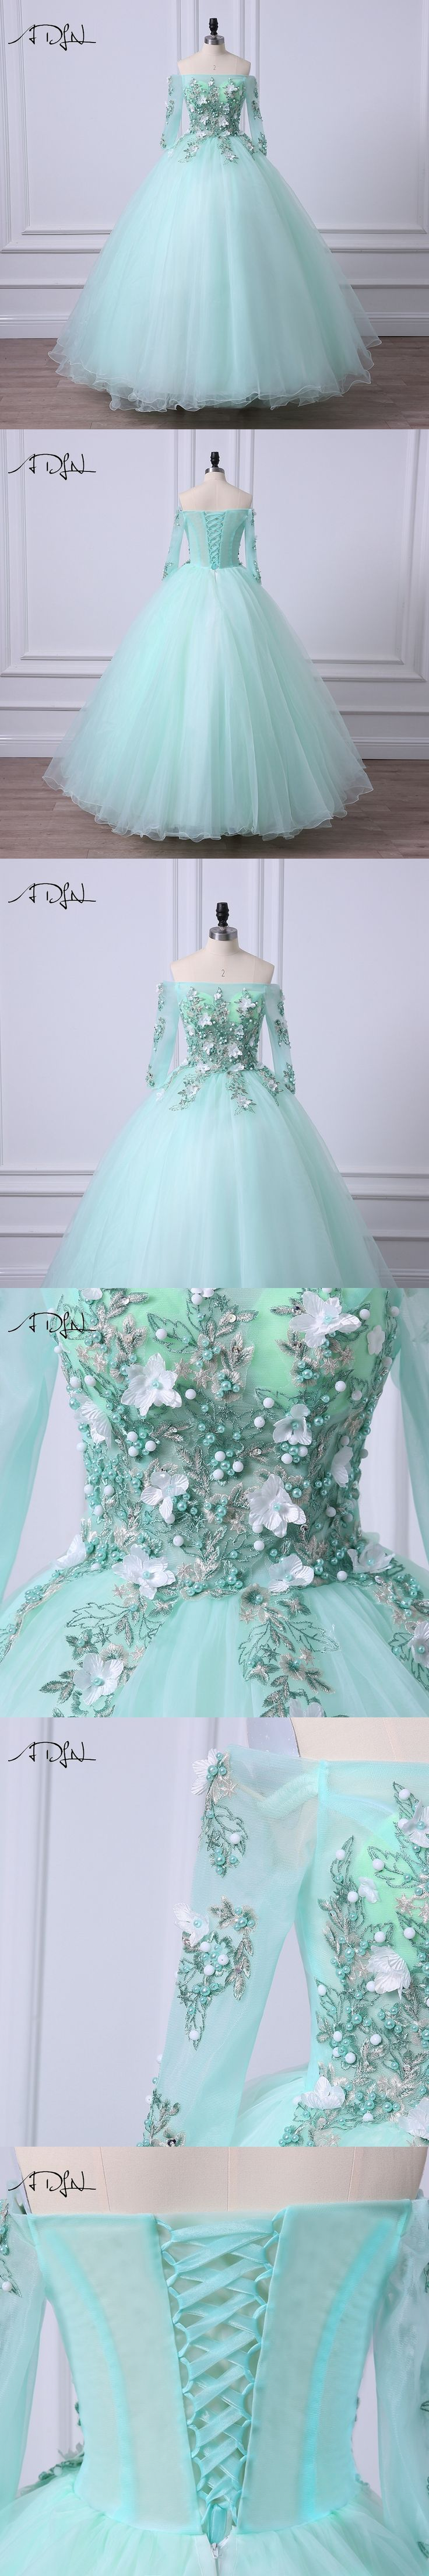 ADLN Mint Green Quinceanera Dresses Off-the-shoulder Fairy Debutante Gown 2017 Short Sleeve Ball Gown Sweet 16 Dress